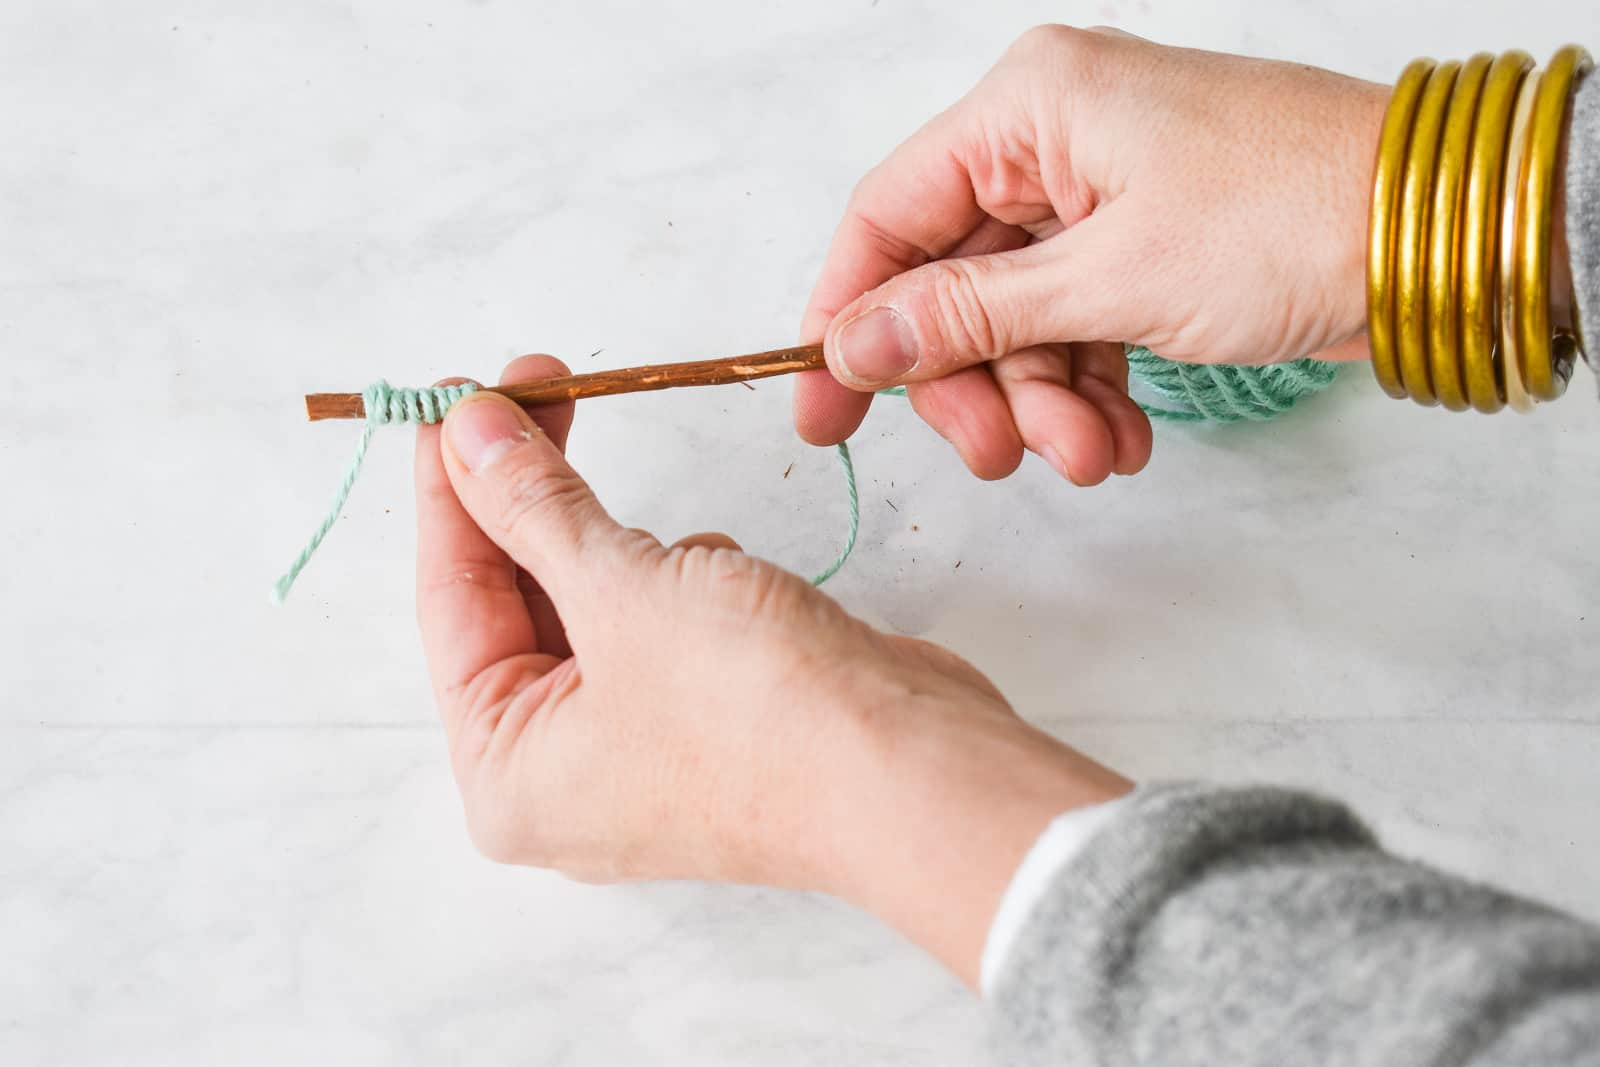 wrap the twine by twisting with one hand